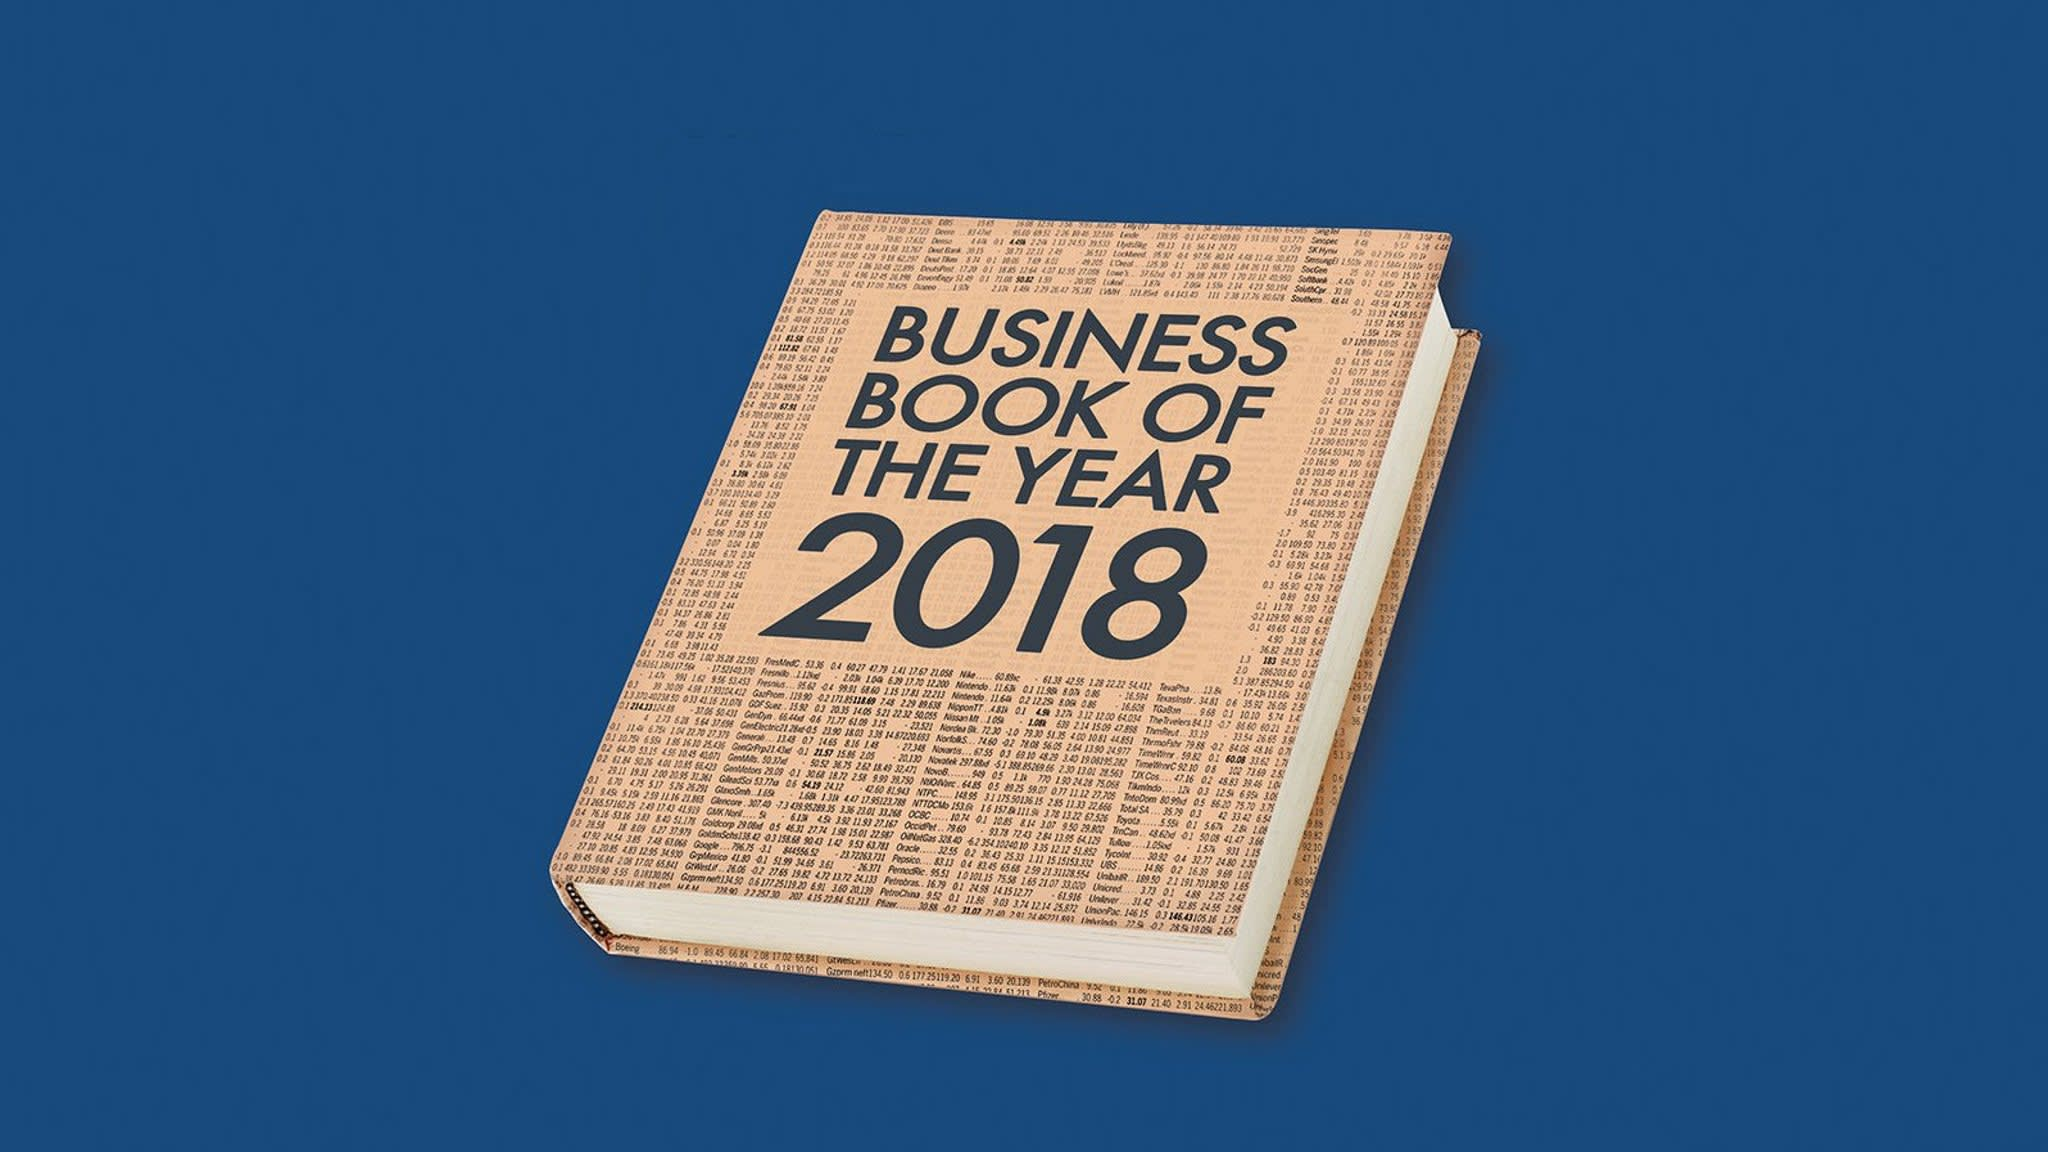 Ft Mckinsey Business Book Of The Year 2018 Financial Times